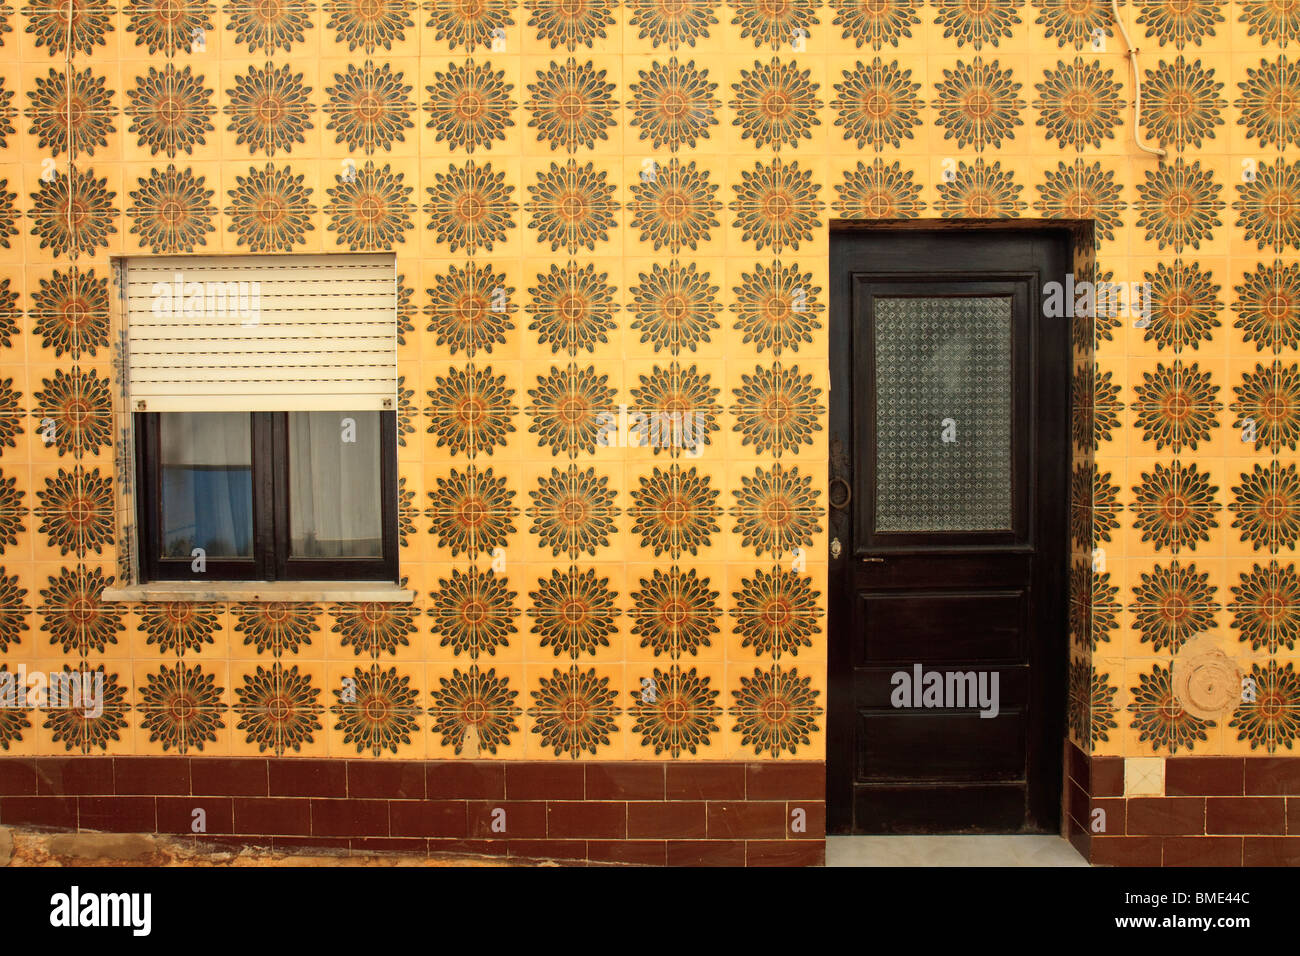 Portugal Selima Tile Fronted House Stock Photo